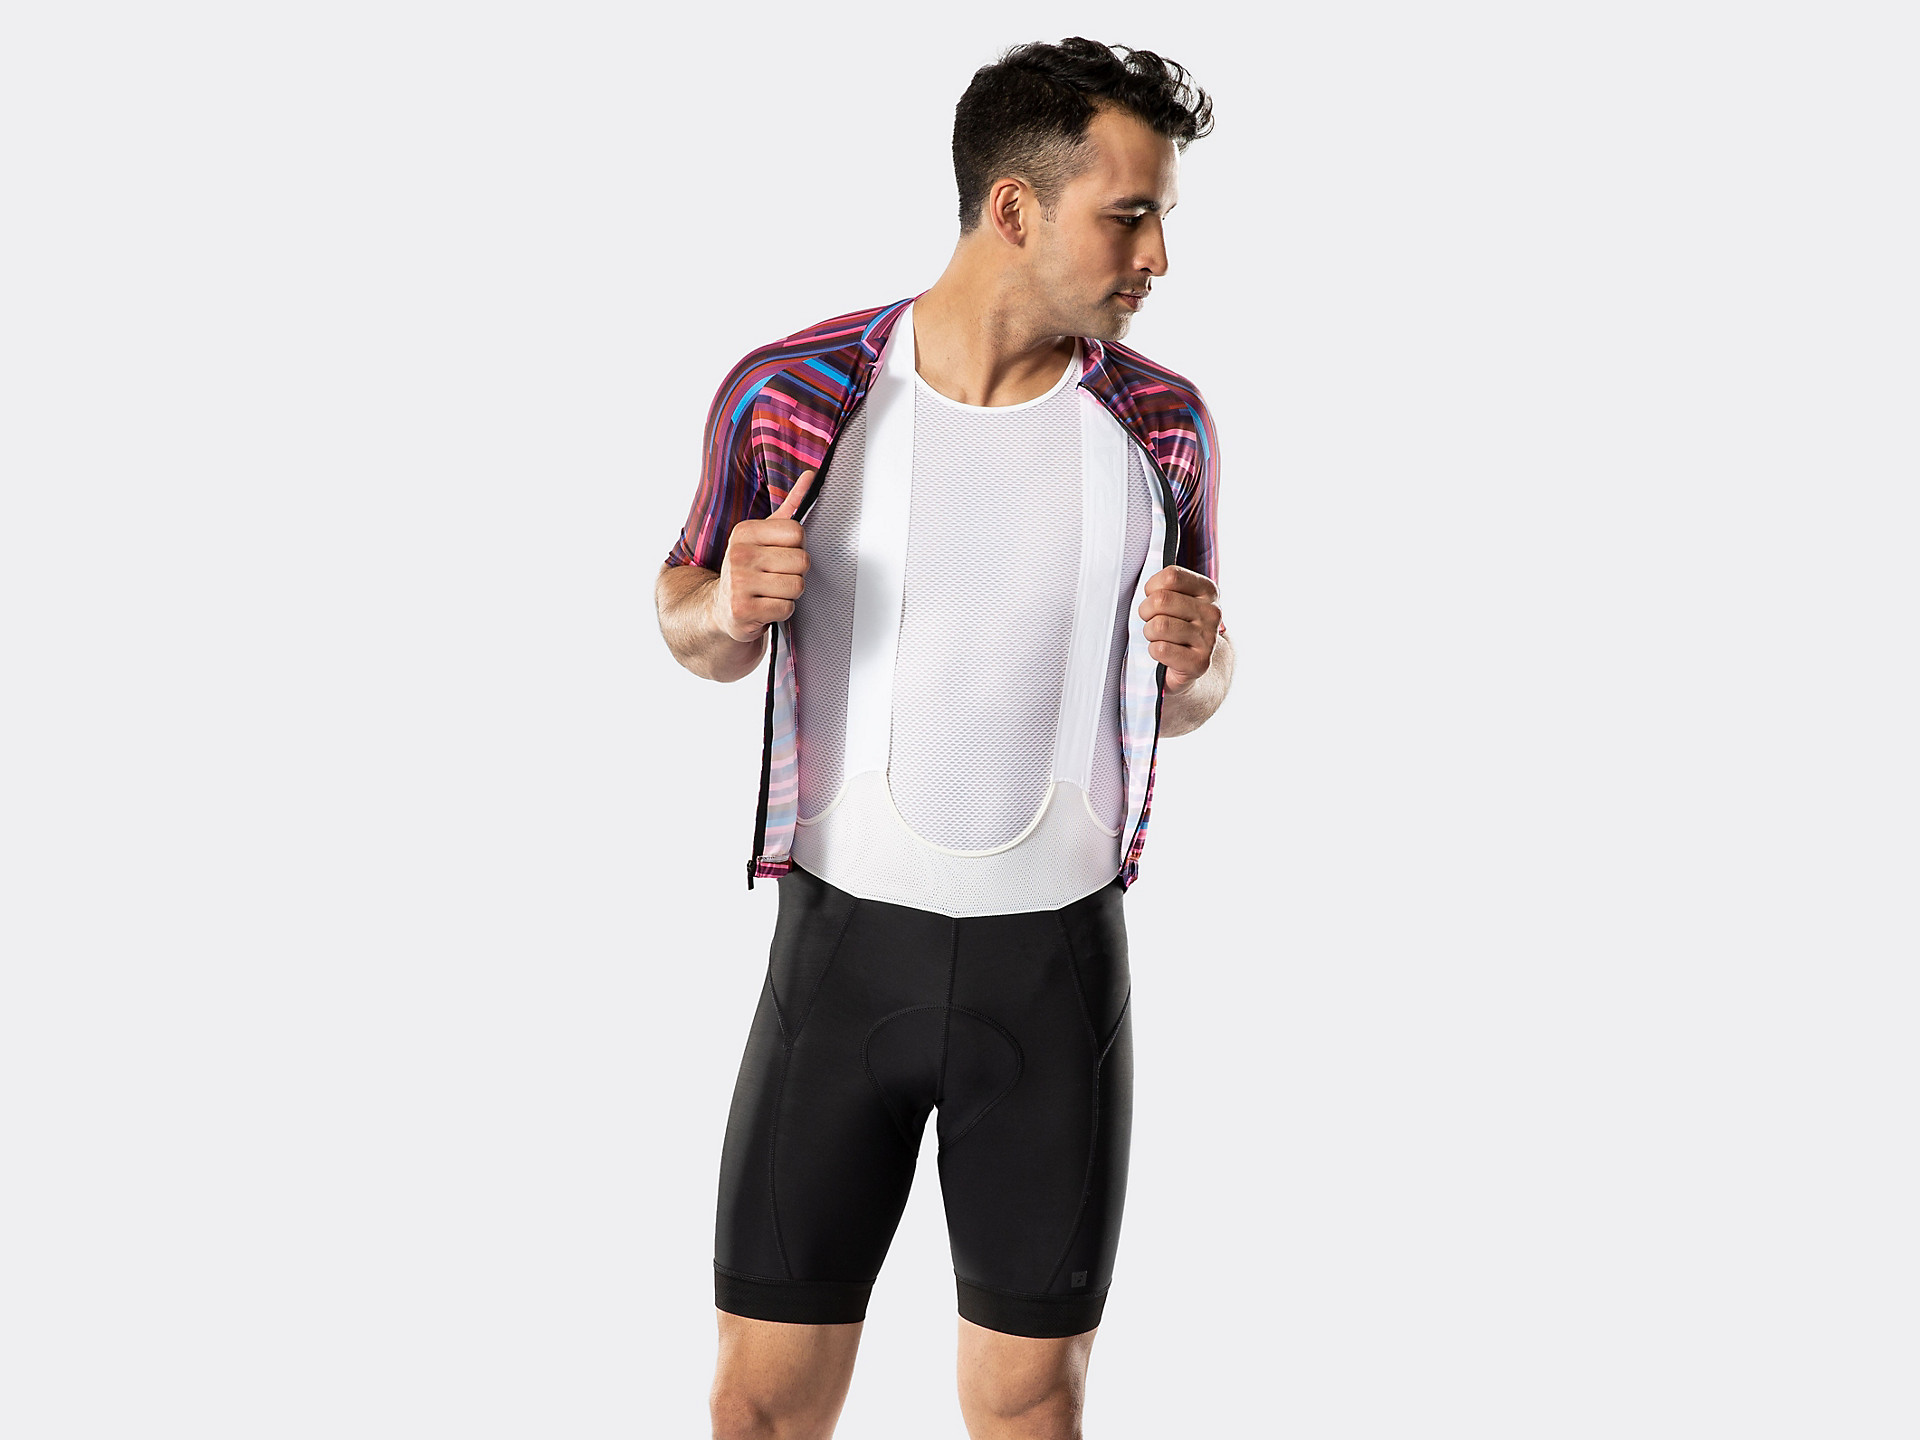 c4bece728dfc3 Bontrager Circuit Bib Cycling Short. Overview  Features  Tech specs  Sizing    fit  Reviews  FAQs  Buy. Prev Next